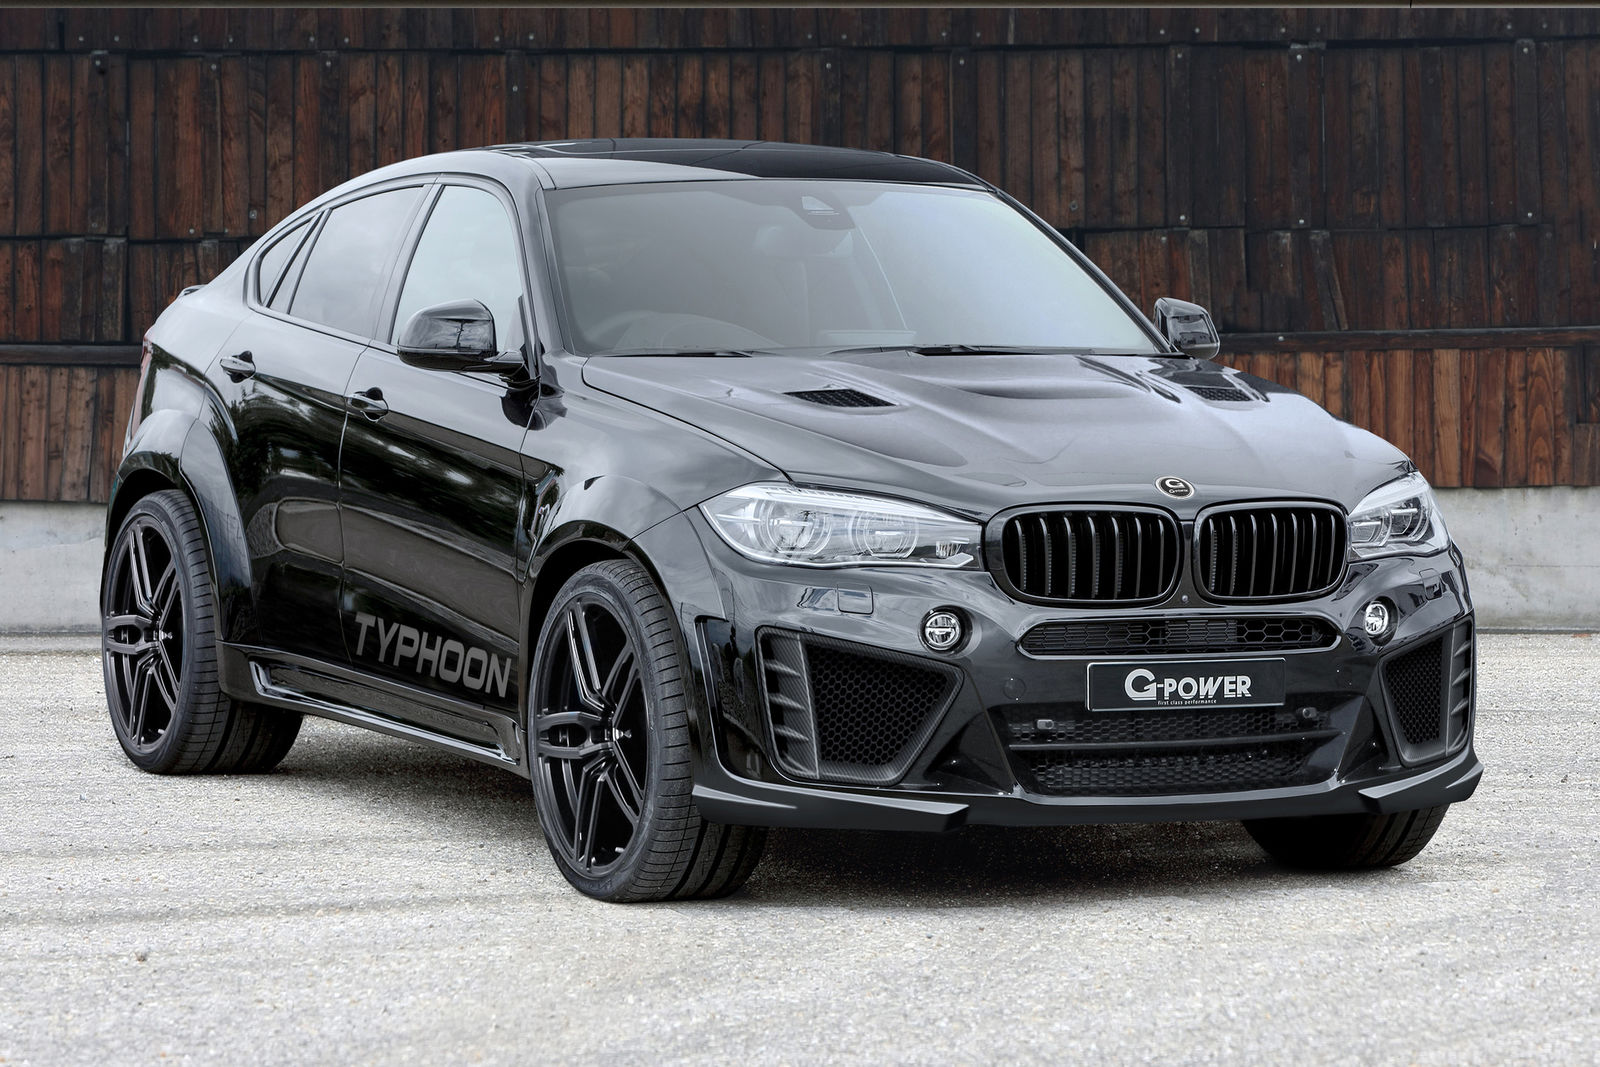 G Power Unveils Typhoon Tuning Kit For Bmw X6m It Has 750 Hp And Looks The Part Autoevolution